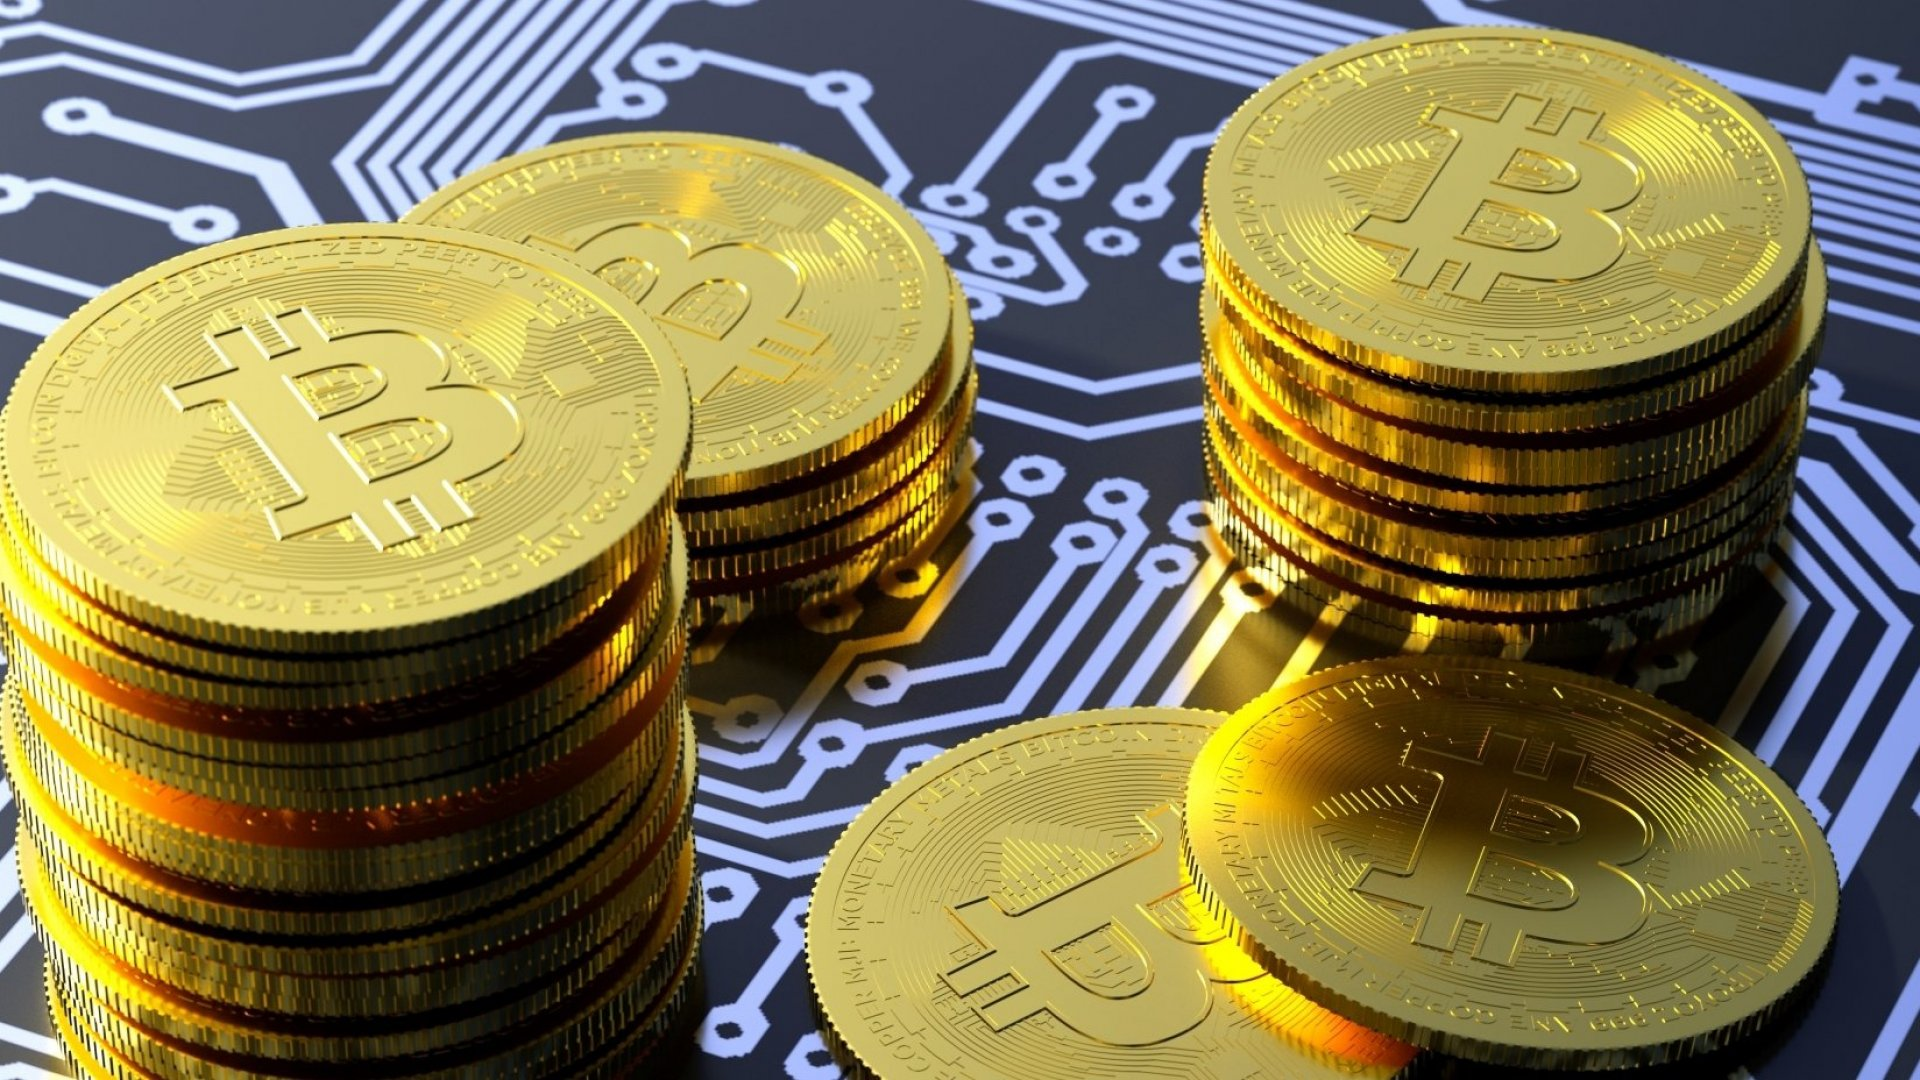 What the Public Relations Industry Needs To Know About Bitcoin, Cryptocurrency and Initial Coin Offerings